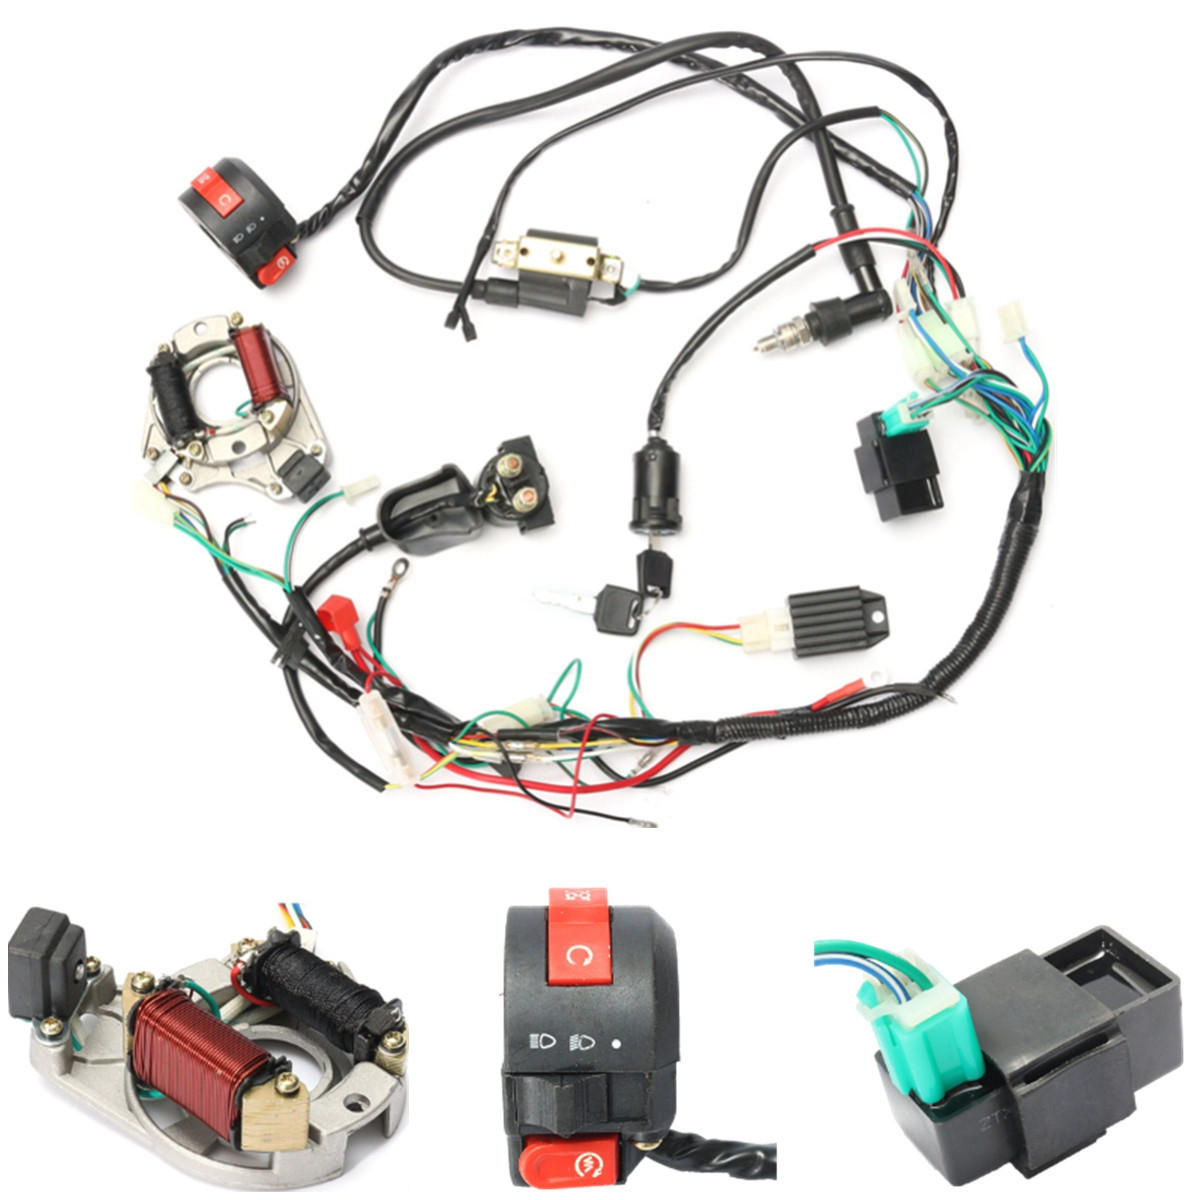 50cc 70cc 90cc 110cc Cdi Wire Harness Assembly Wiring Kit Atv Cover For Electric Start Quad